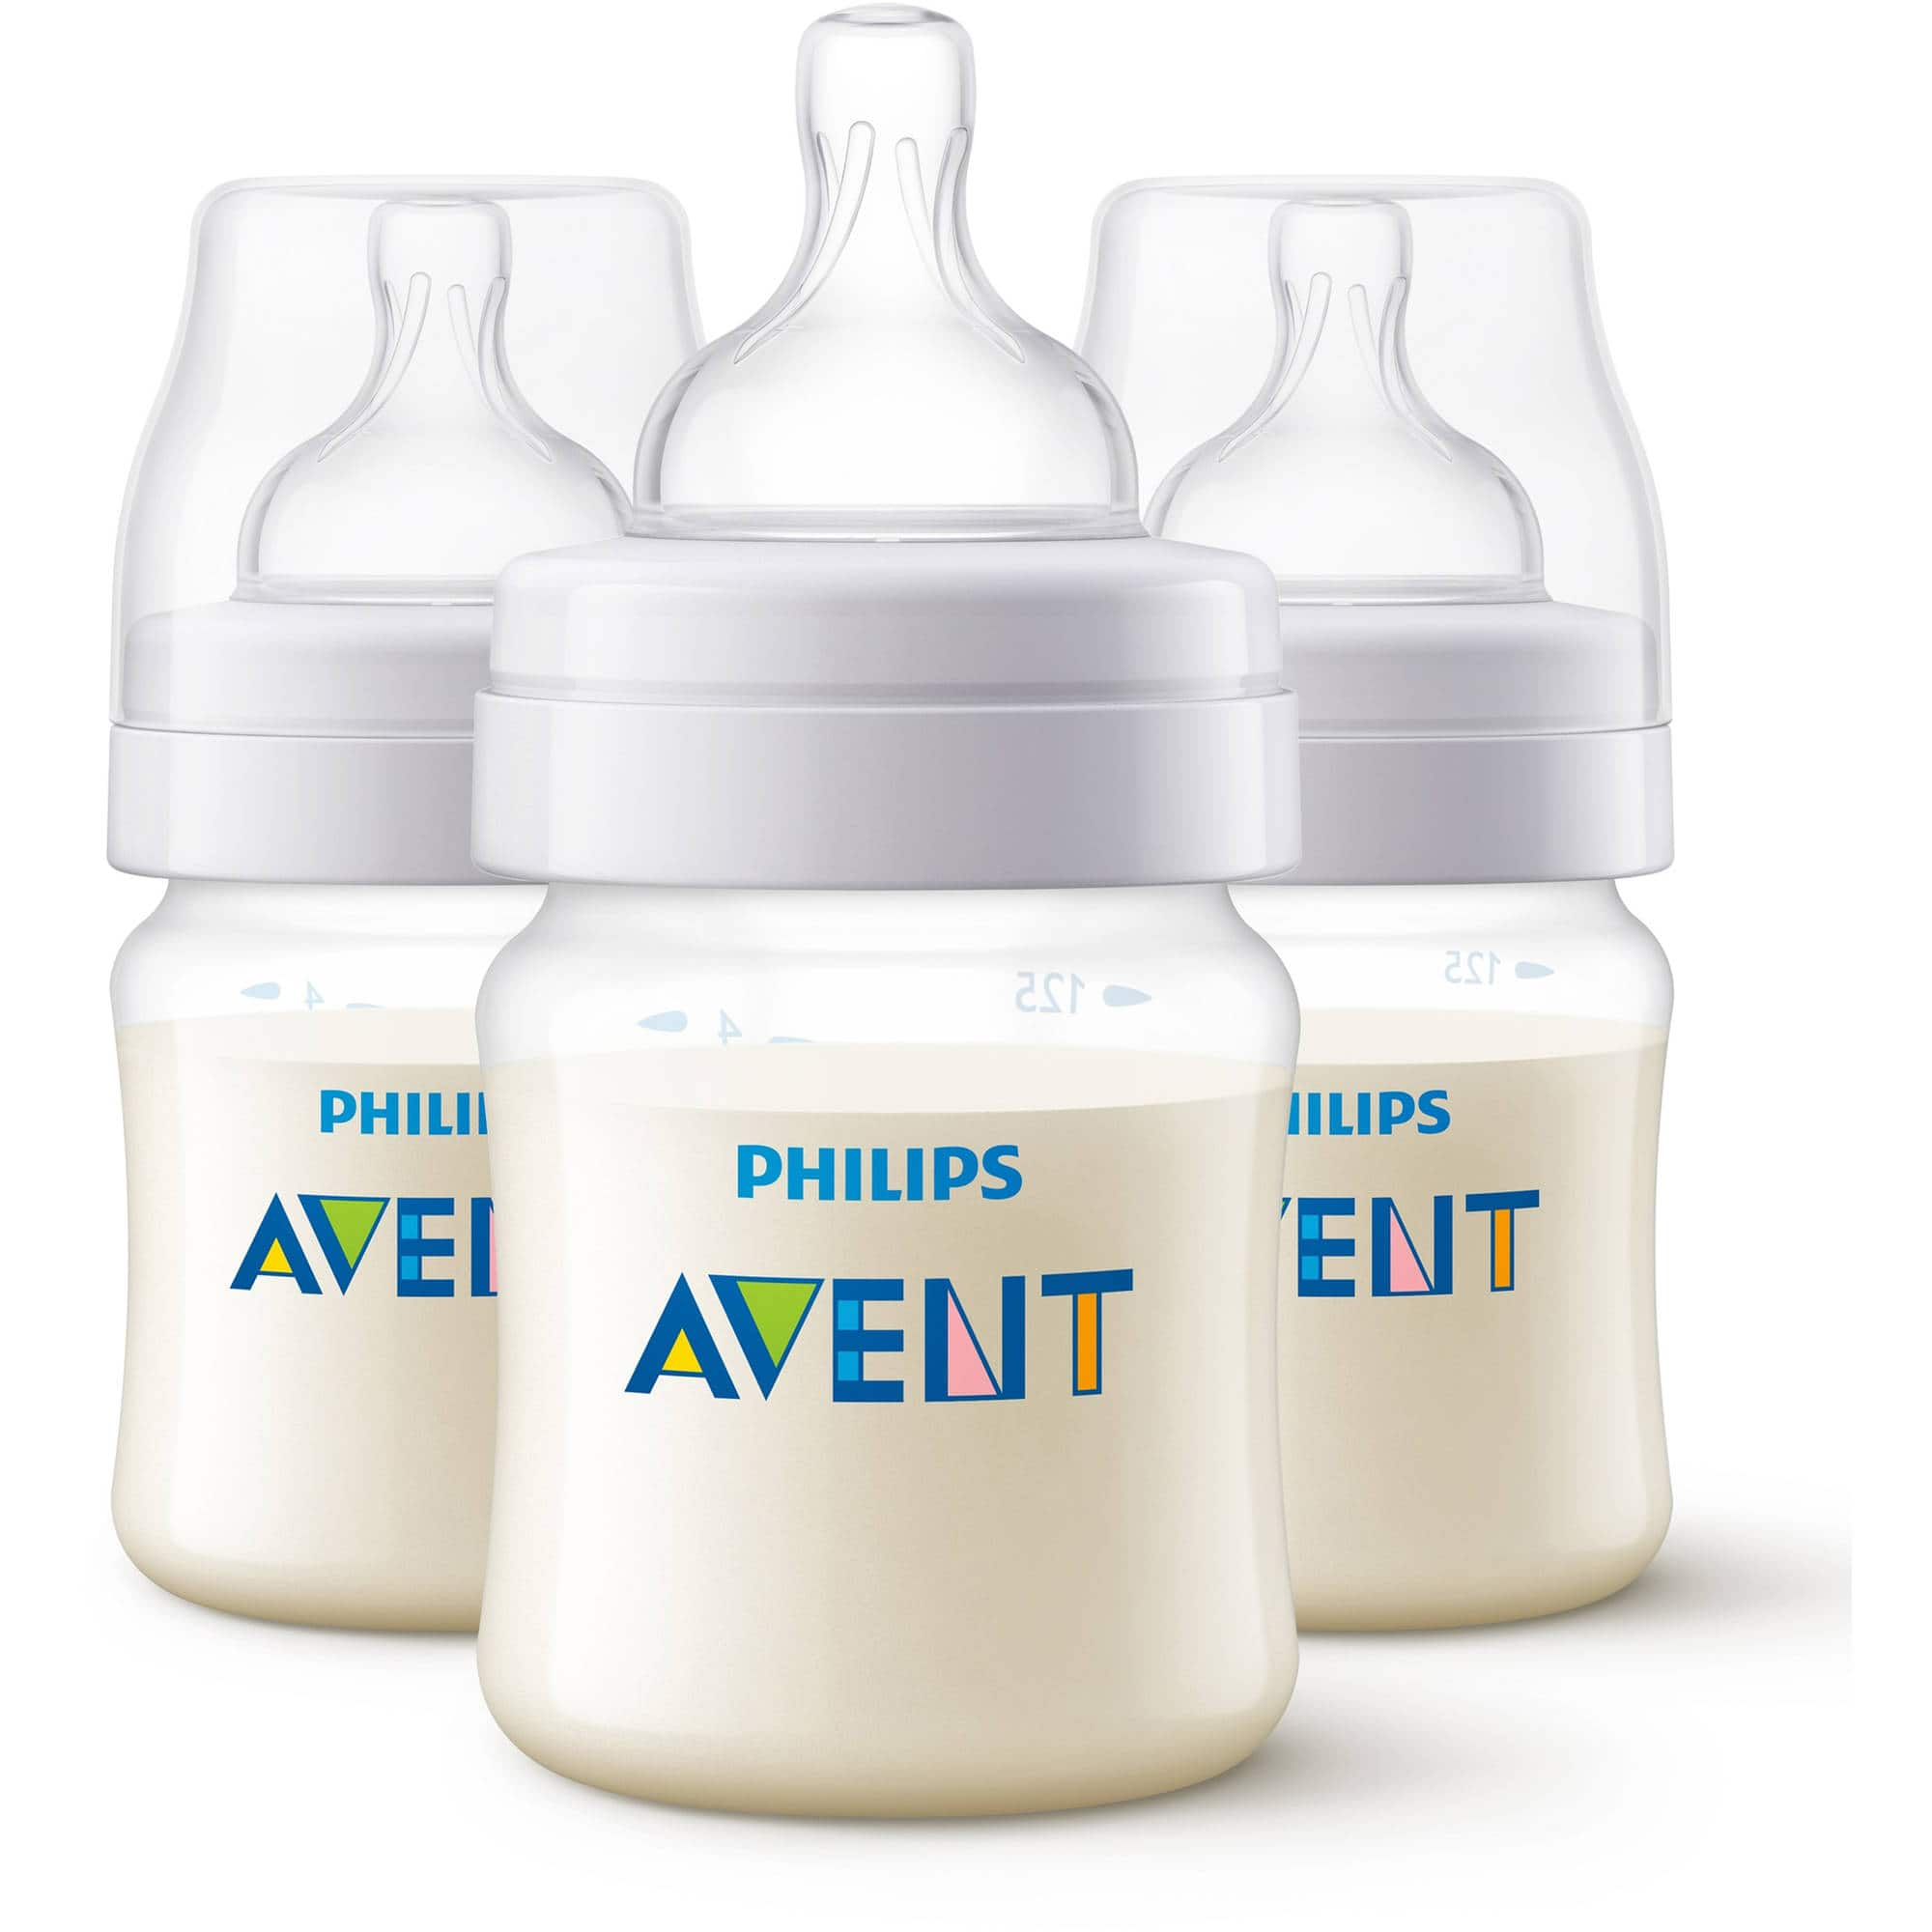 Philips Avent Anti-Colic Baby Bottles - 4oz, Clear, 3ct for $9.59  + Free Store Pickup